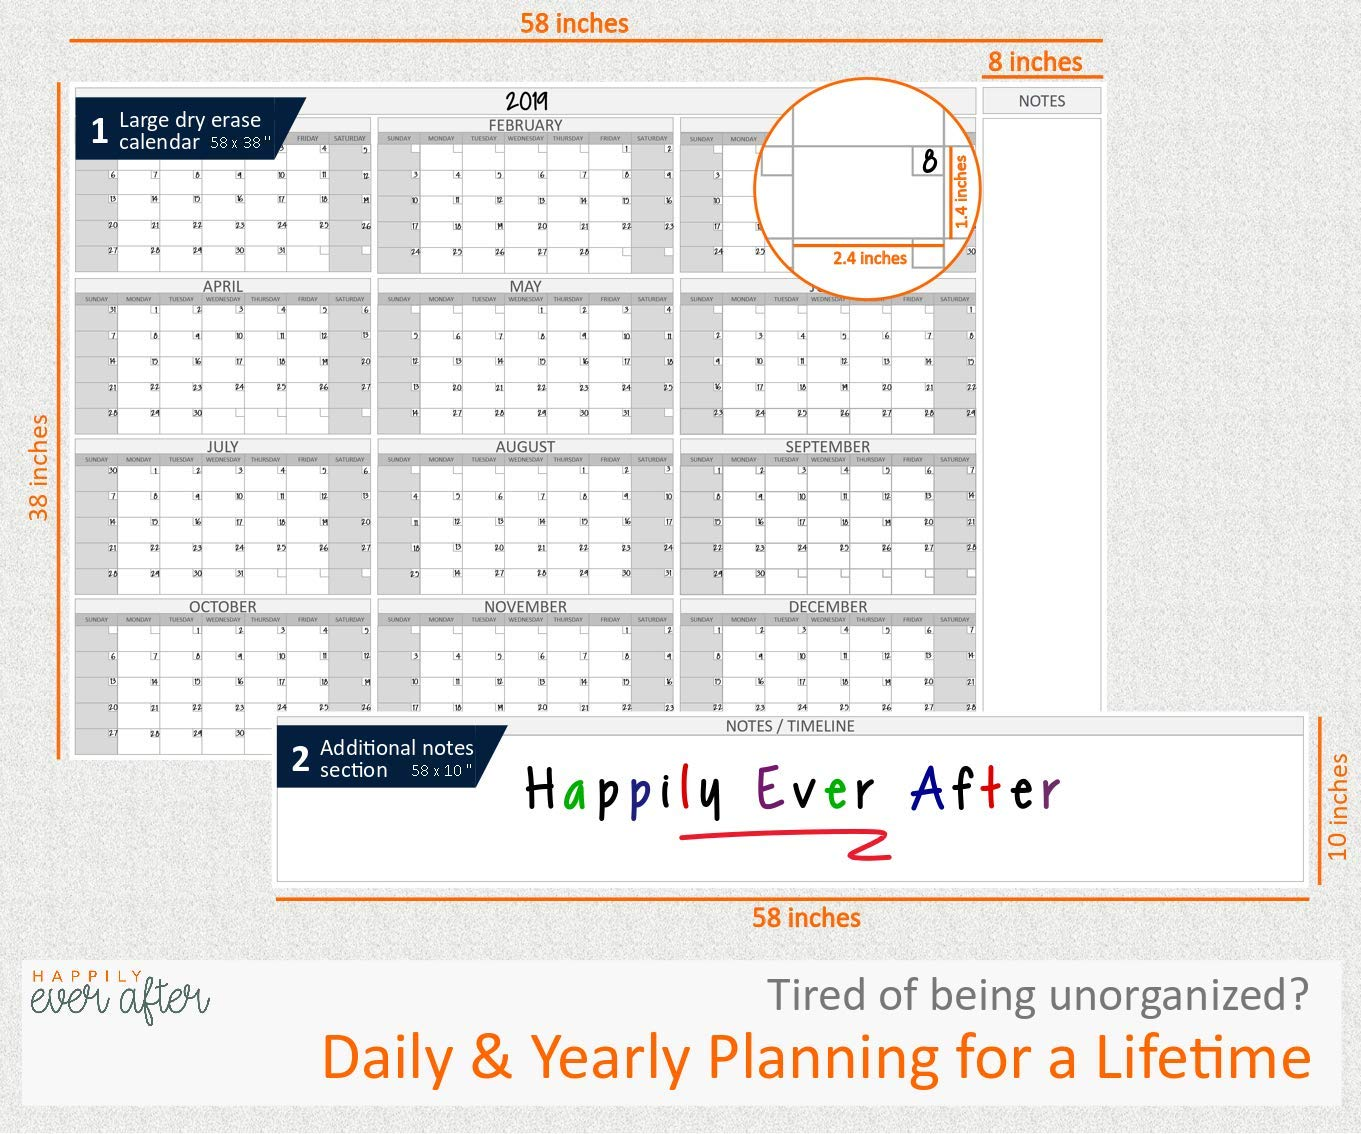 HEA Large Dry Erase Wall Calendar 2019 58'' x 48'' | Premium New Laminate | Blank Undated, Reusable & Erasable 12 Month Annual Planner | Classroom, Fiscal Year, Office, Project & Family Schedule by Happily Ever After (Image #2)